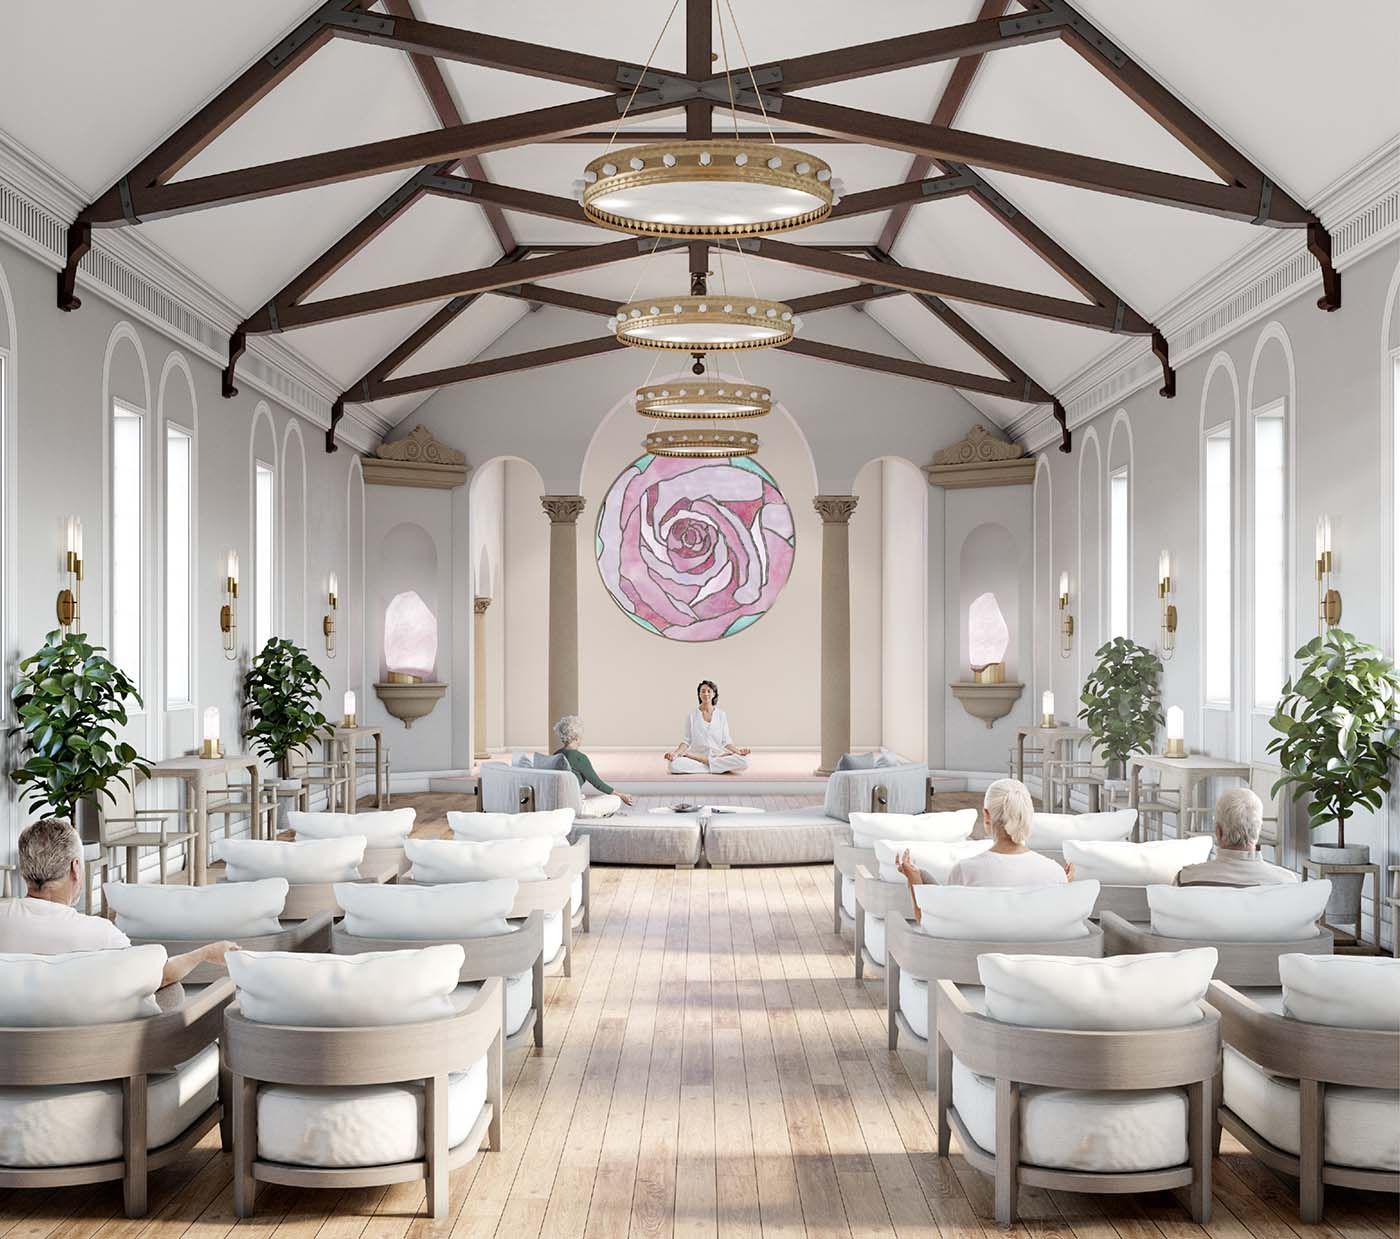 Relaxing area of a retirement village in Bowral, Sydney with people praying and relaxing in white interiors.